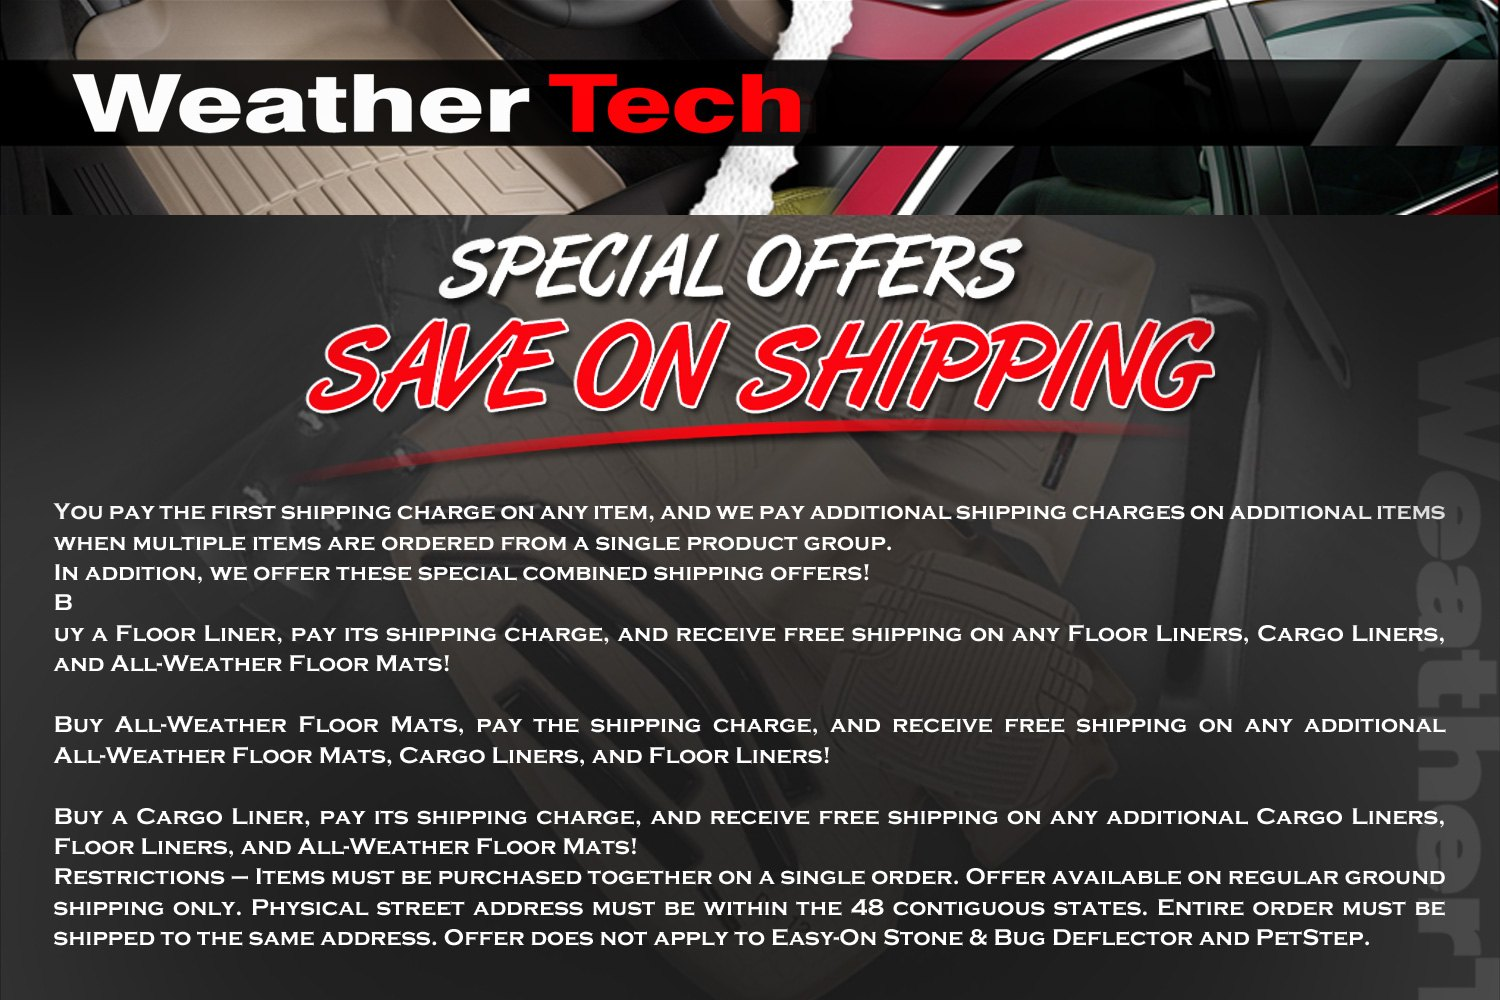 All Weather Protection. Unlike standard floor mats, these WeatherTech floor liners are designed to protect the entire floor pan and feature multi-level channels and grooves to trap mud, snow, and spills, making them perfect for All-Weather use.